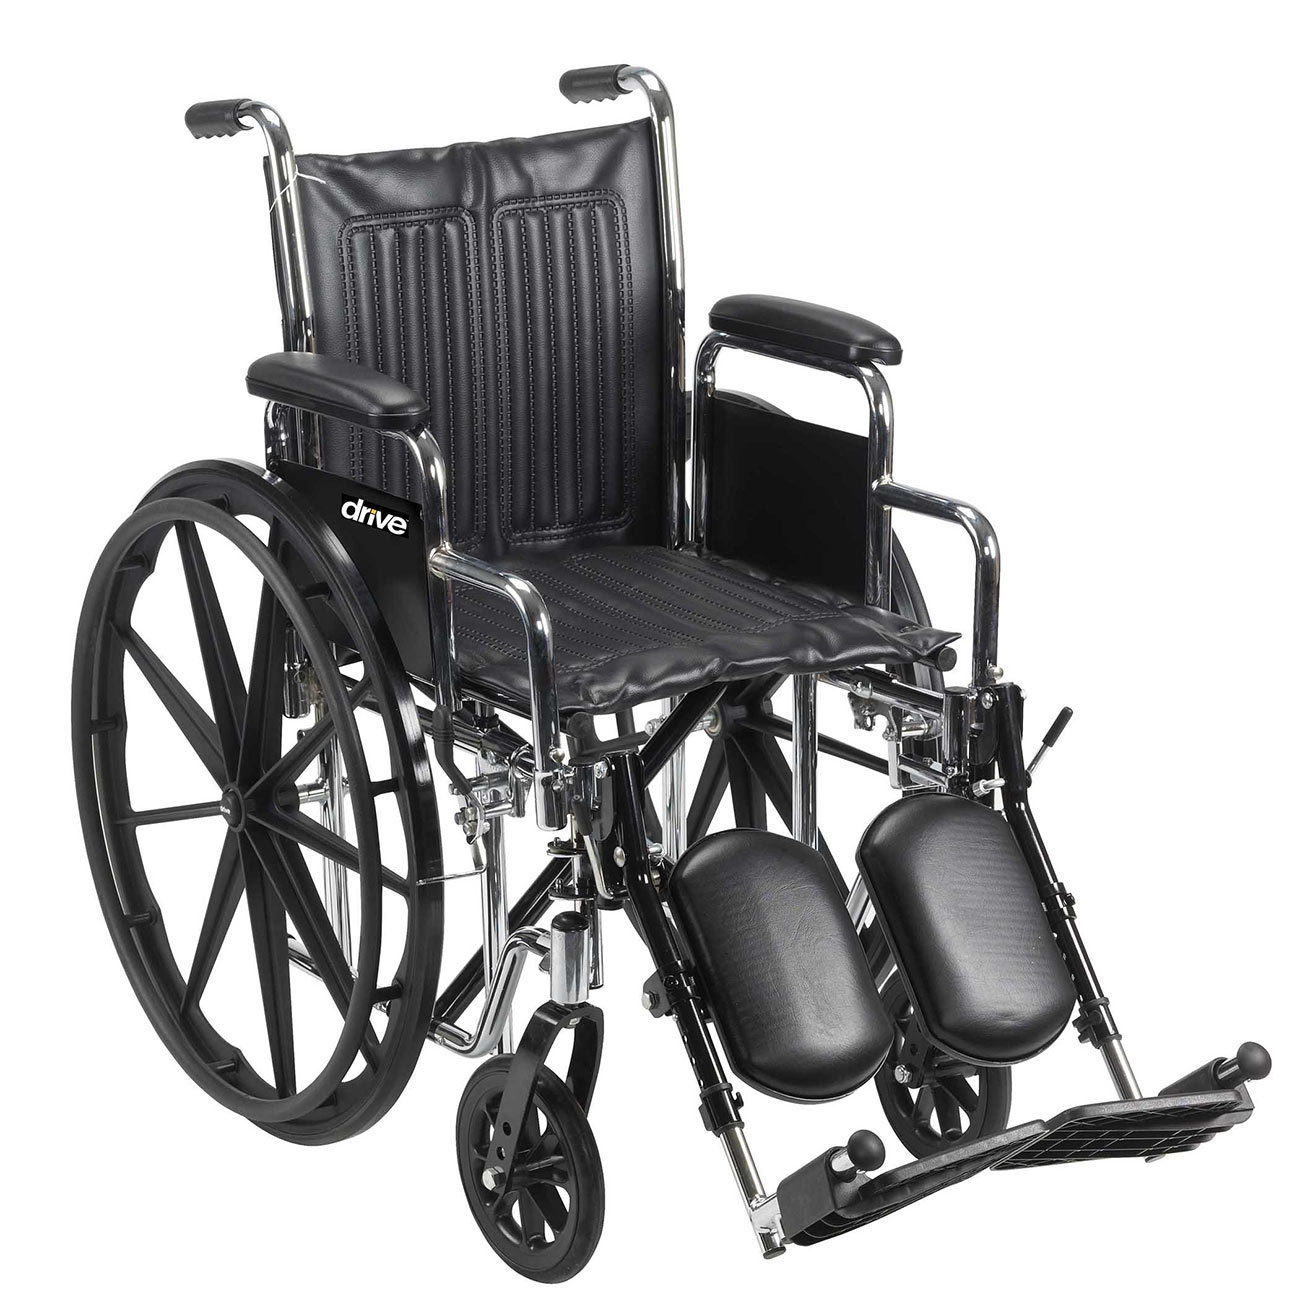 Chrome Sport 16-in Wheelchair-Desk Arms-Footrests